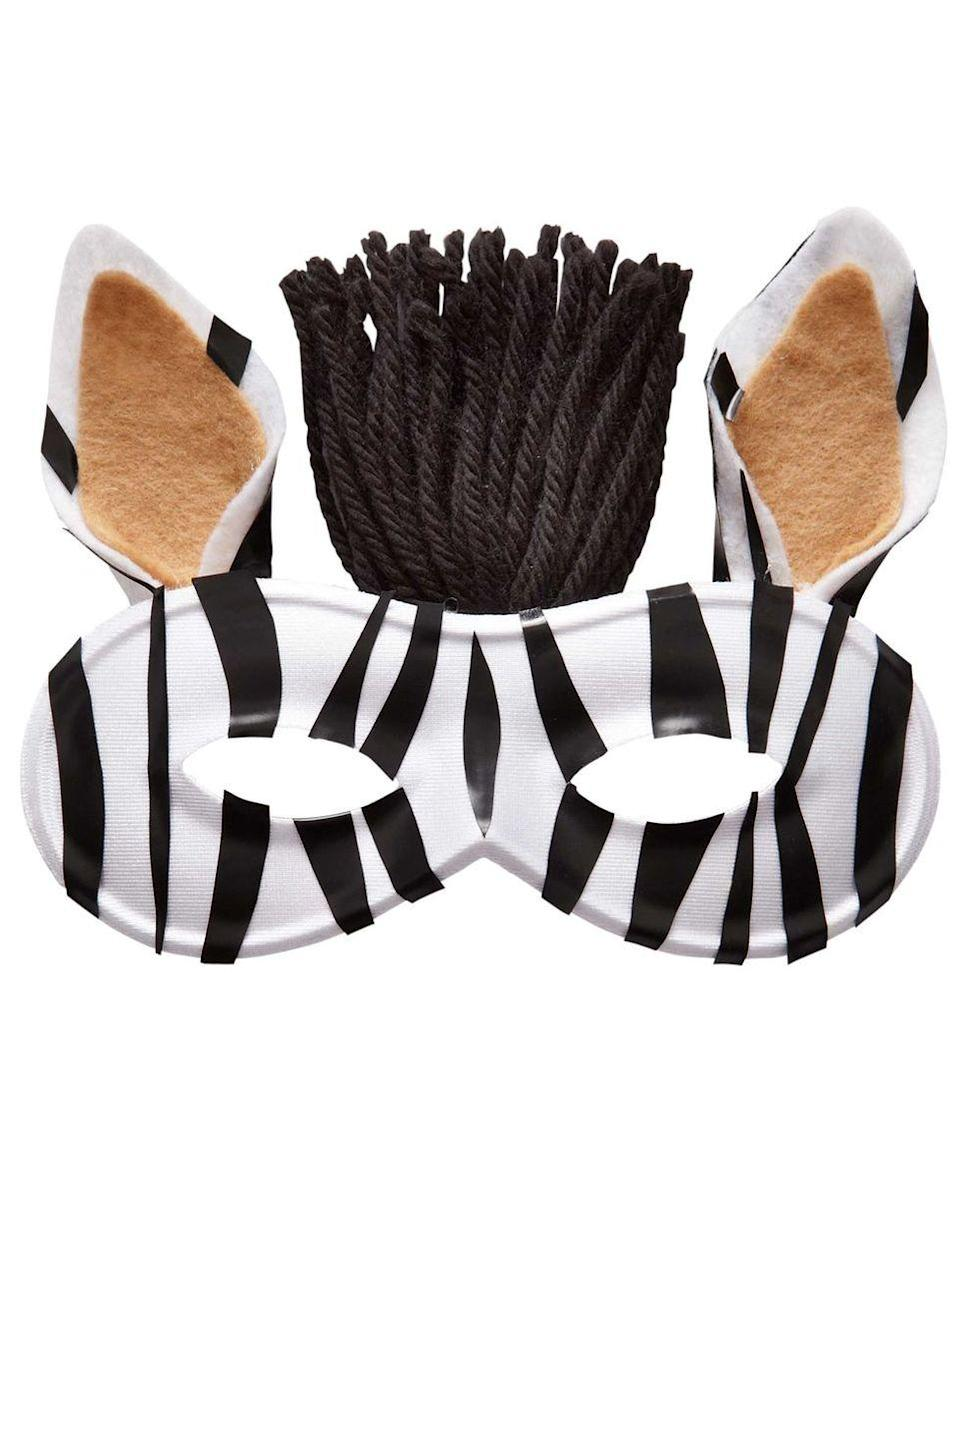 <p>Stripes have never been so fashionable than on this zebra mask. <br></p><p>1. Trim pieces of electrical tape to create varied zebra stripes. Adhere to the mask, pressing down edges with a fingernail.</p><p>2. Cut two ear shapes from the white felt and two slightly smaller ones from the tan felt. Add black tape stripes to white pieces. Layer white and tan pieces together and fold in at the base to form ears. Glue to the back of the mask. Let set.</p><p>3. Trim a handful of black yarn into 4-inch lengths; attach to the back of the mask with hot glue, forming a tuft. Spritz with hairspray to stiffen the yarn. Let dry.</p>